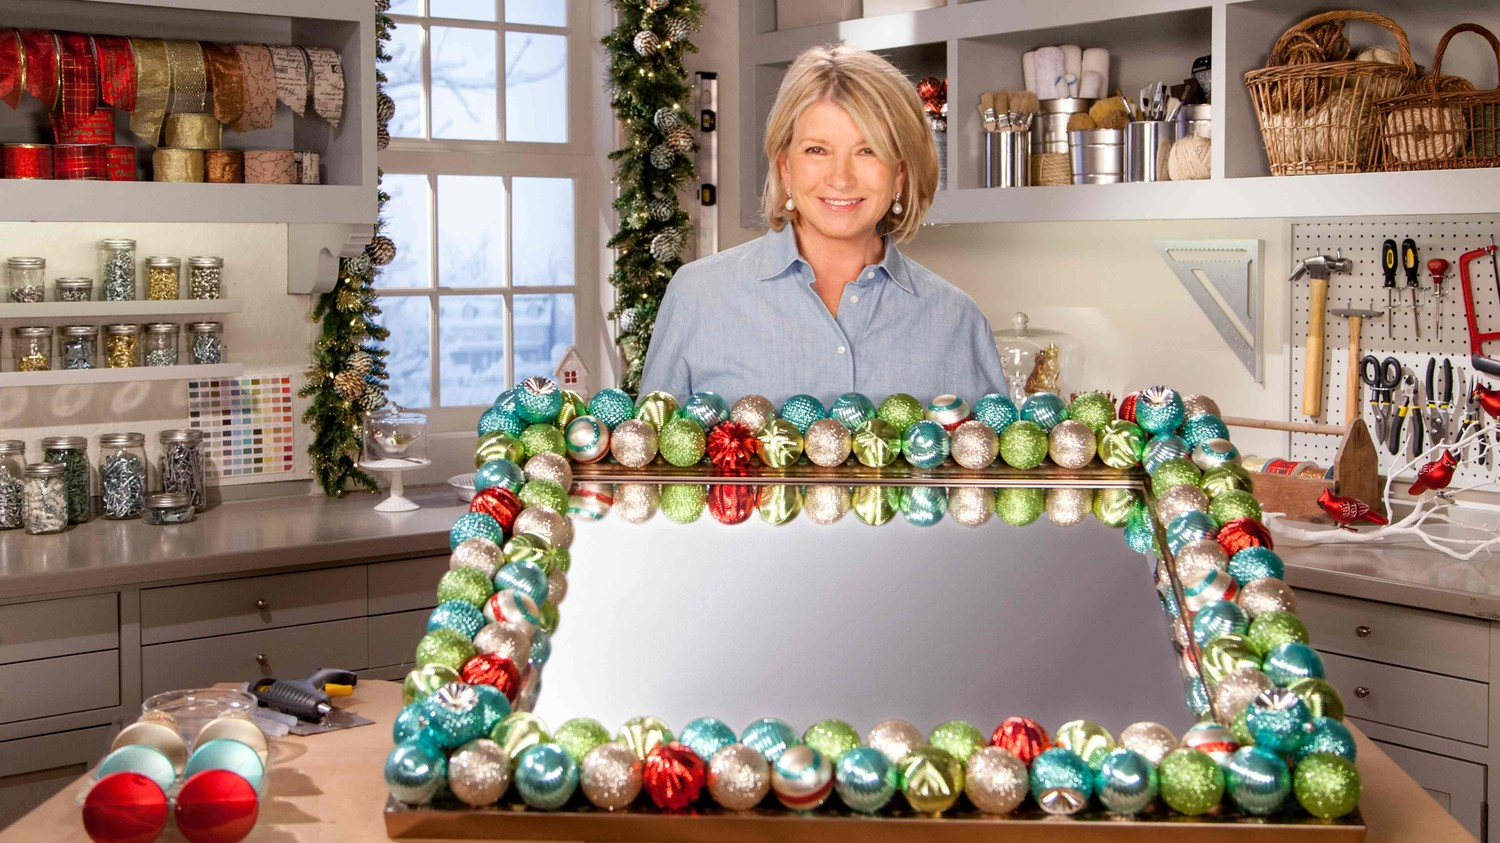 Video: Holiday Decorated Ornament Mirror